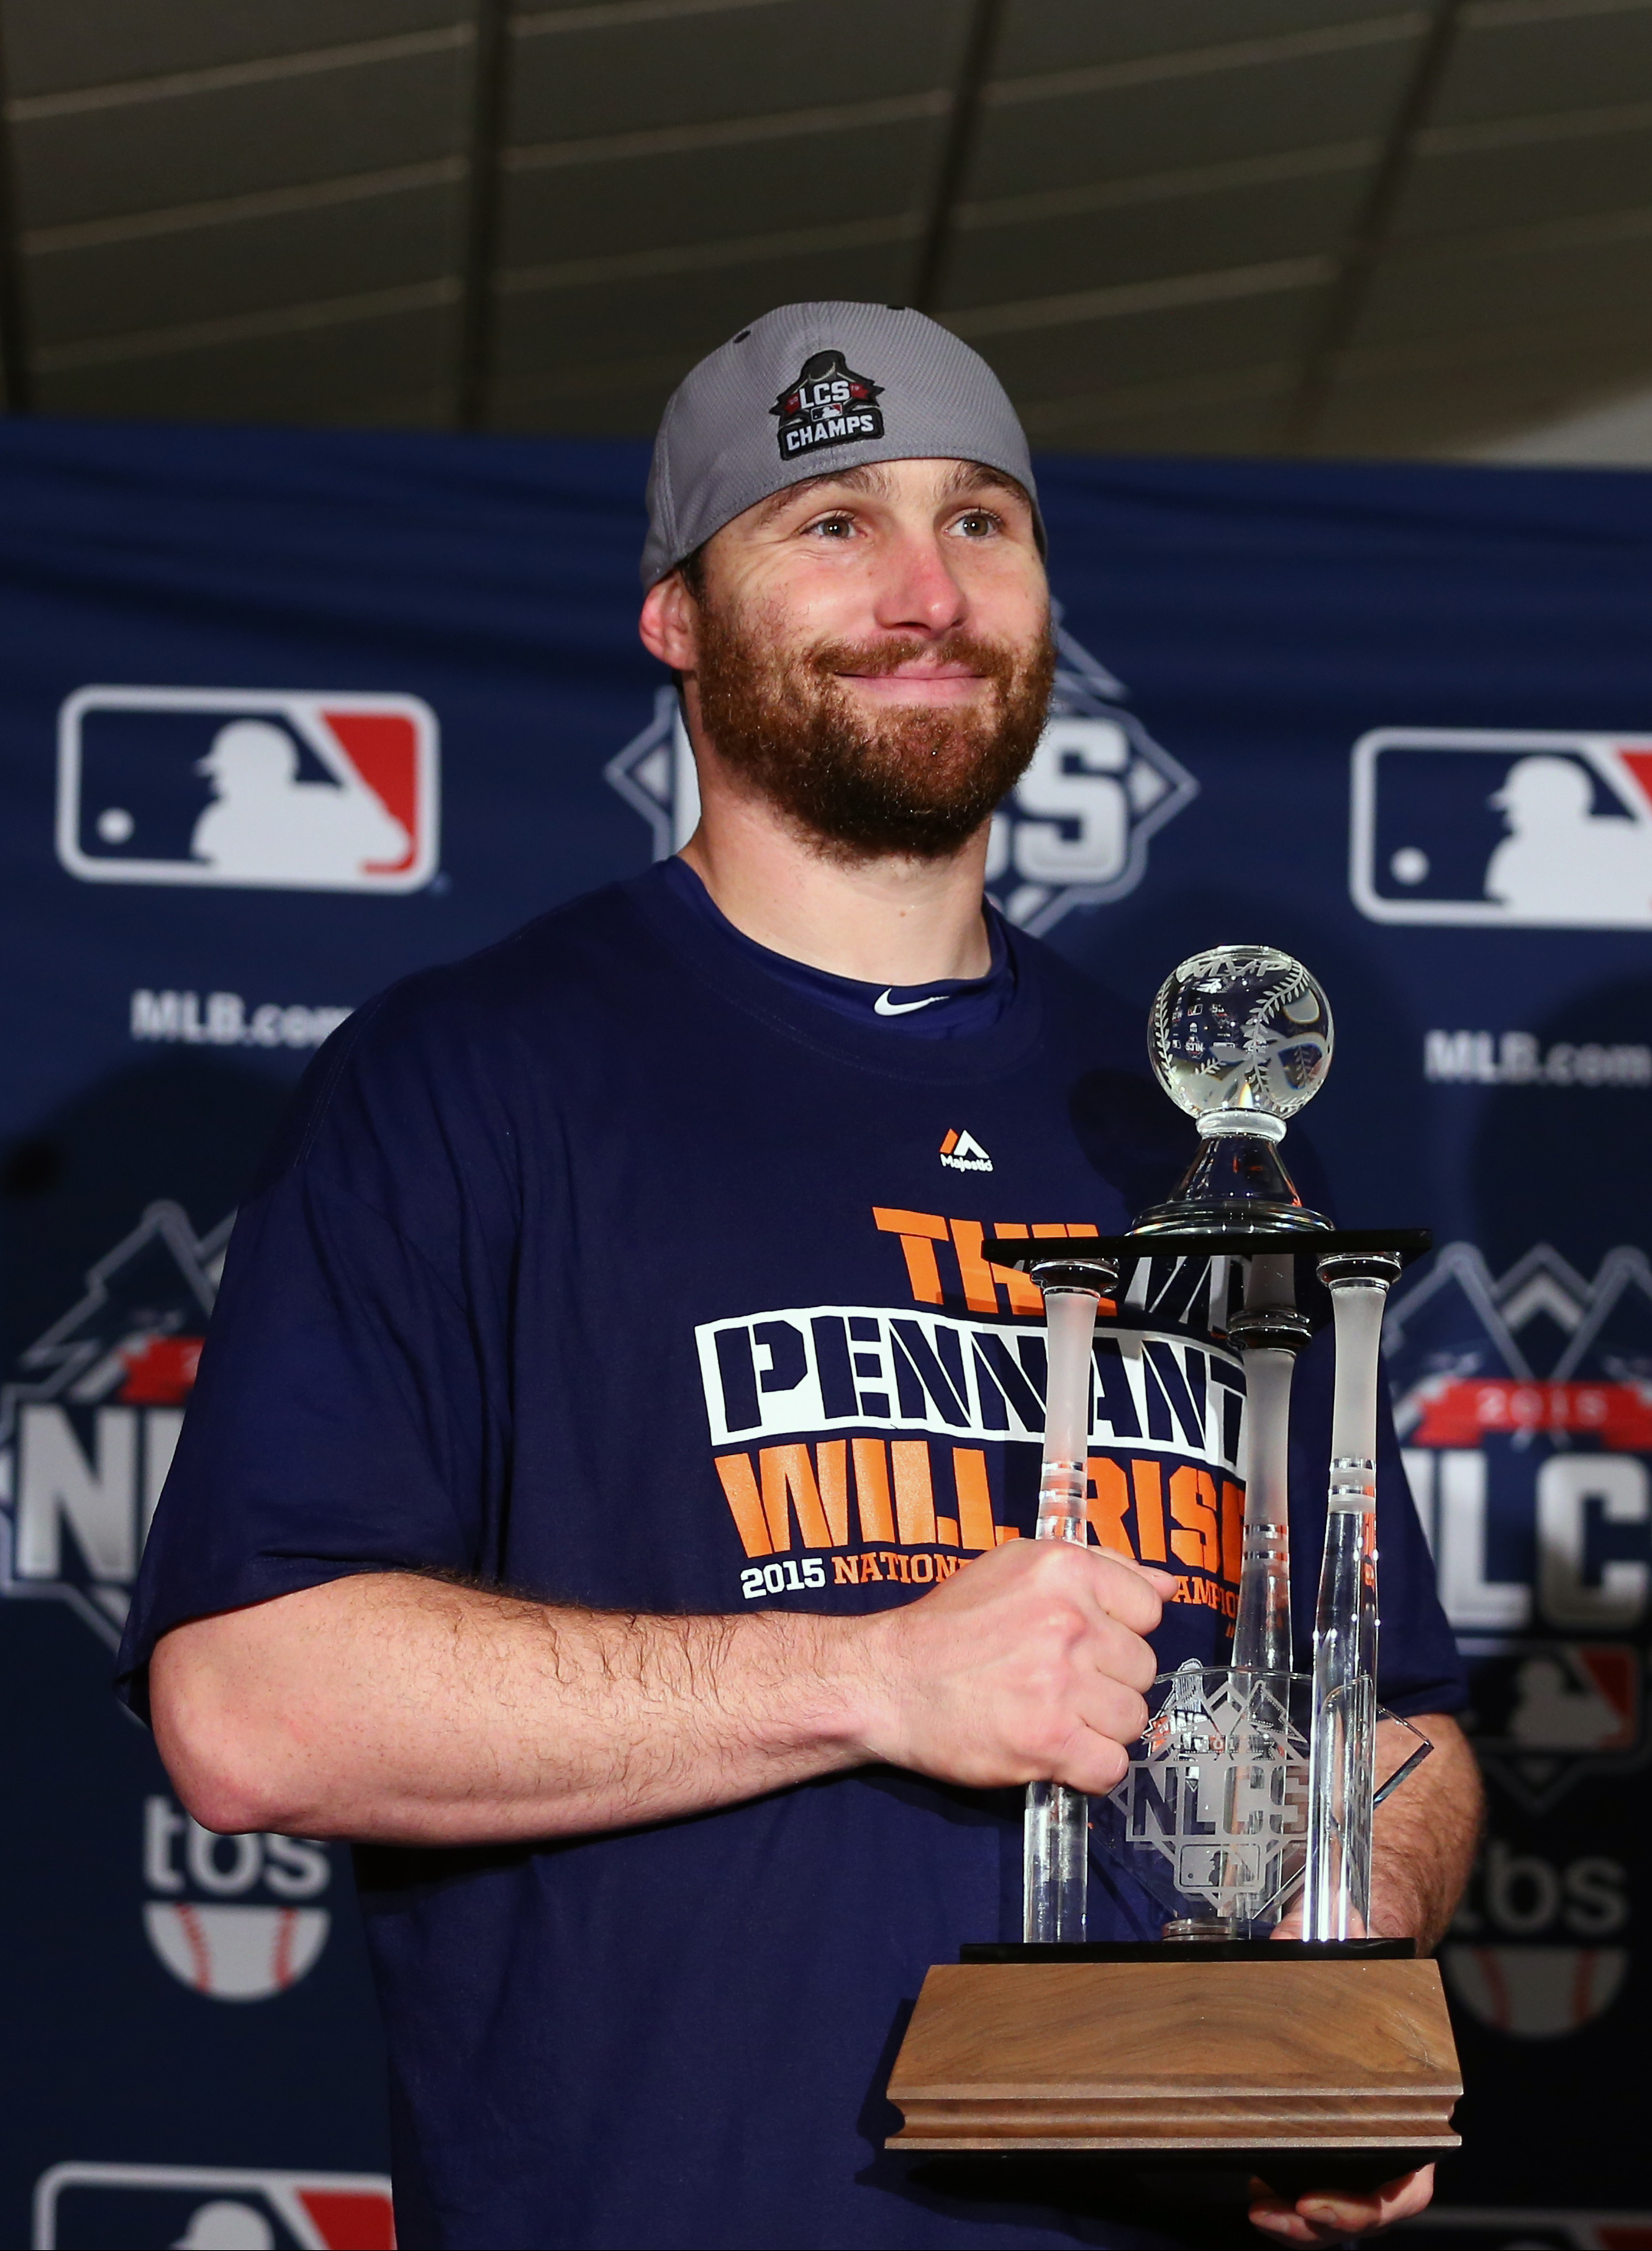 New York Mets' Daniel Murphy holds his MVP trophy after Game 4 of the National League baseball championship series against the Chicago Cubs Wednesday, Oct. 21, 2015, in Chicago. The Mets won 8-3 to advance to the World Series. (Elsa/Pool Photo via AP)